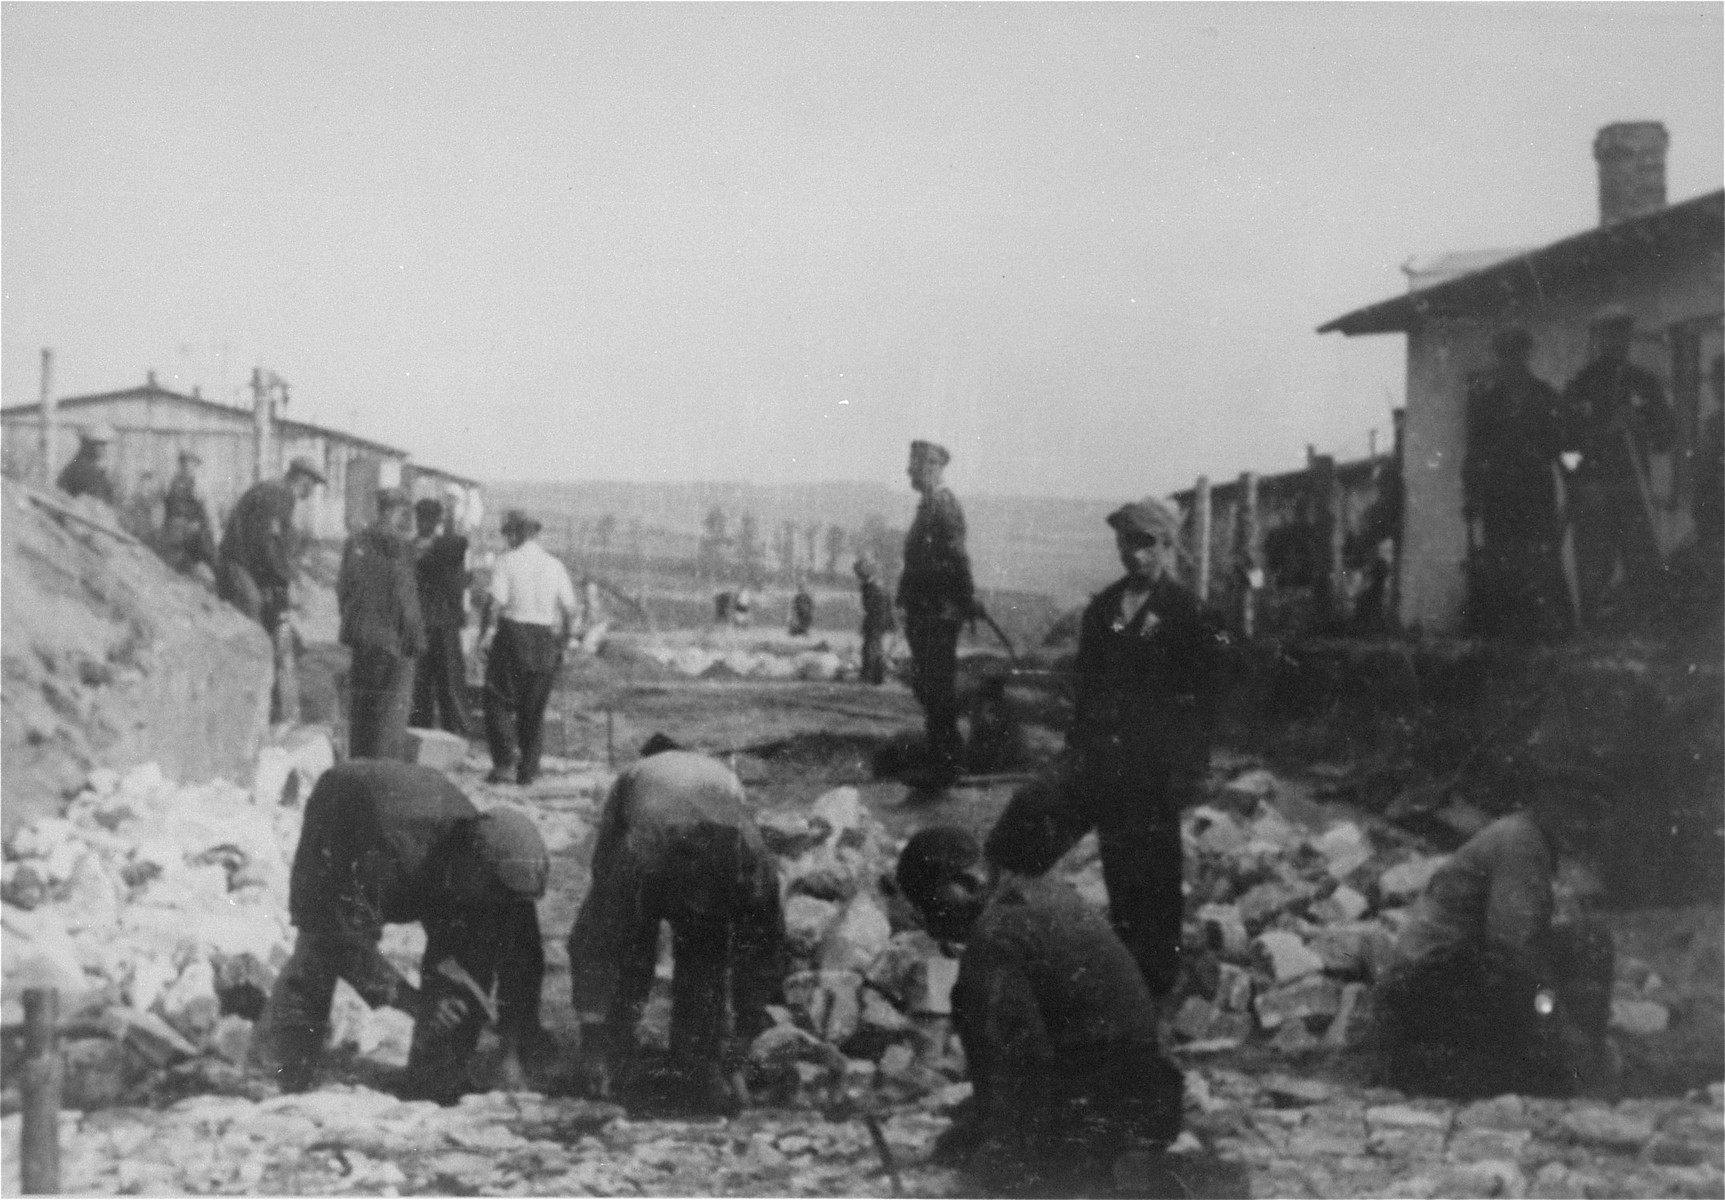 Prisoners at forced labor in the Janowska concentration camp.